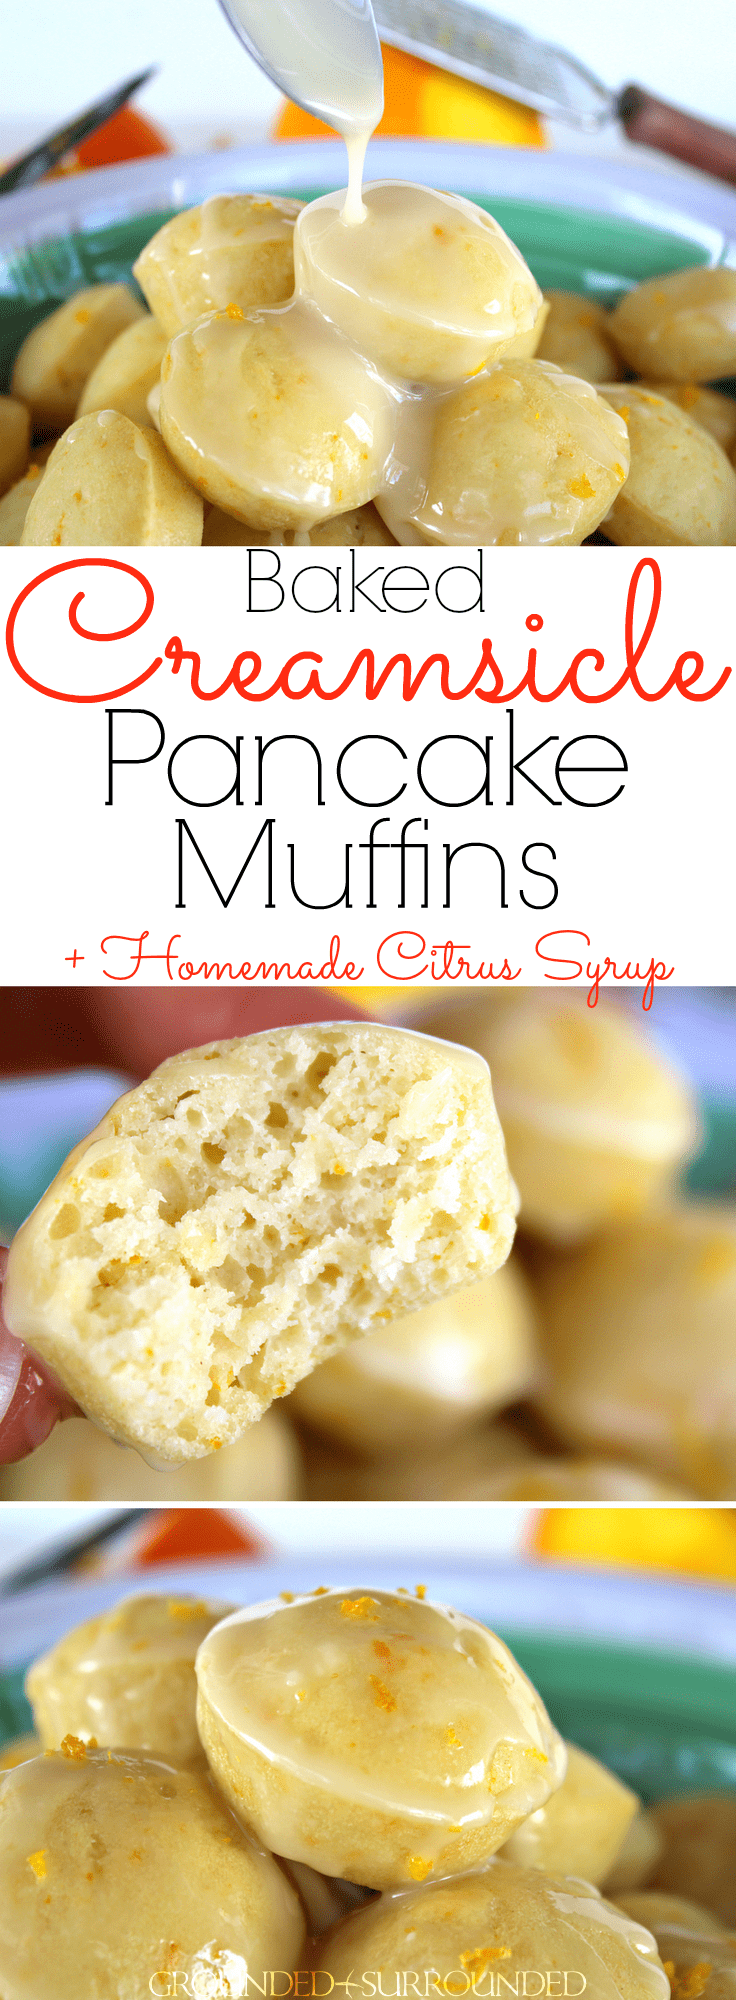 The BEST Baked Creamsicle Mini Pancake Muffins | This easy and from scratch recipe is perfect for breakfast or brunch! Healthy whole wheat flour batter and 3 ingredient fresh orange syrup will brighten your day. These homemade fluffy bites are easy for kids or toddlers to eat with syrup. Just add an egg for protein! Freezer friendly and easily adaptable to be gluten-free too.